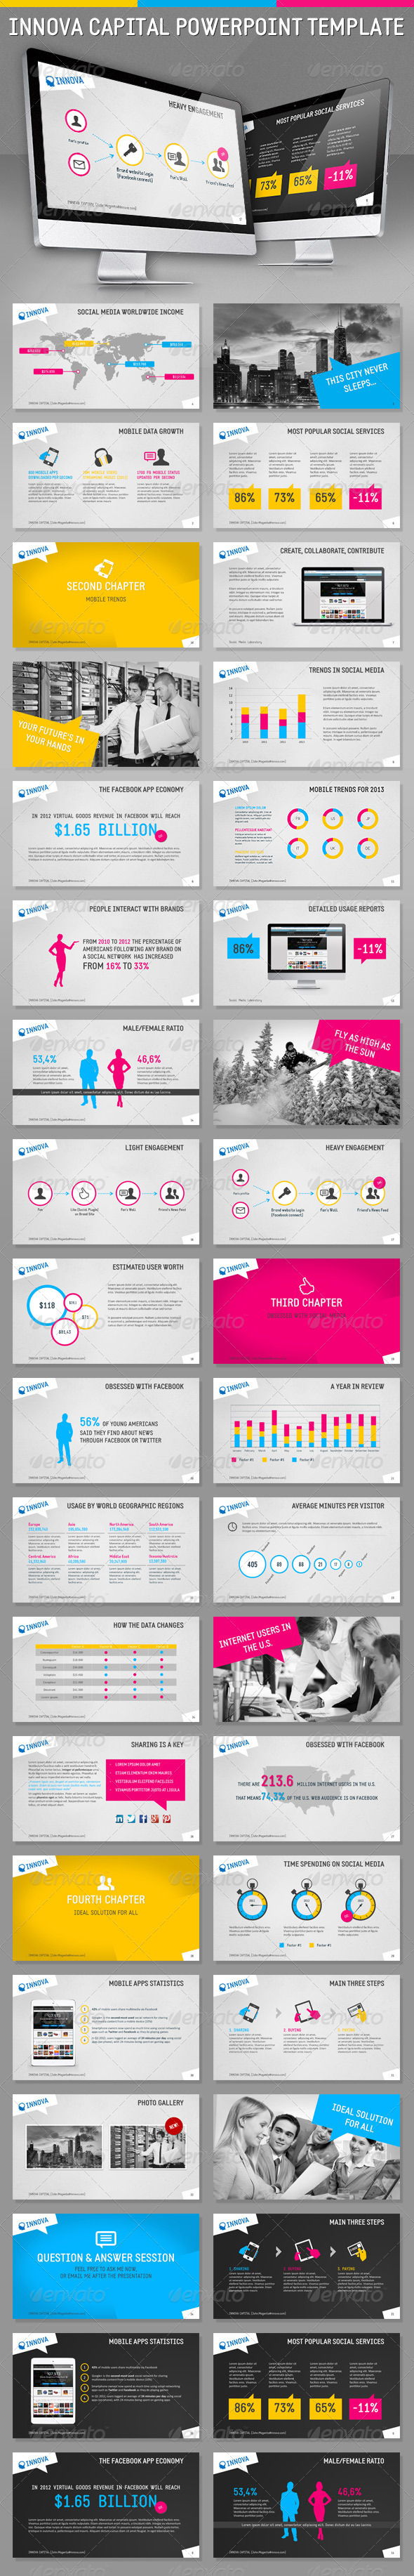 Innova Capital HD PowerPoint Template - Powerpoint Templates Presentation Templates